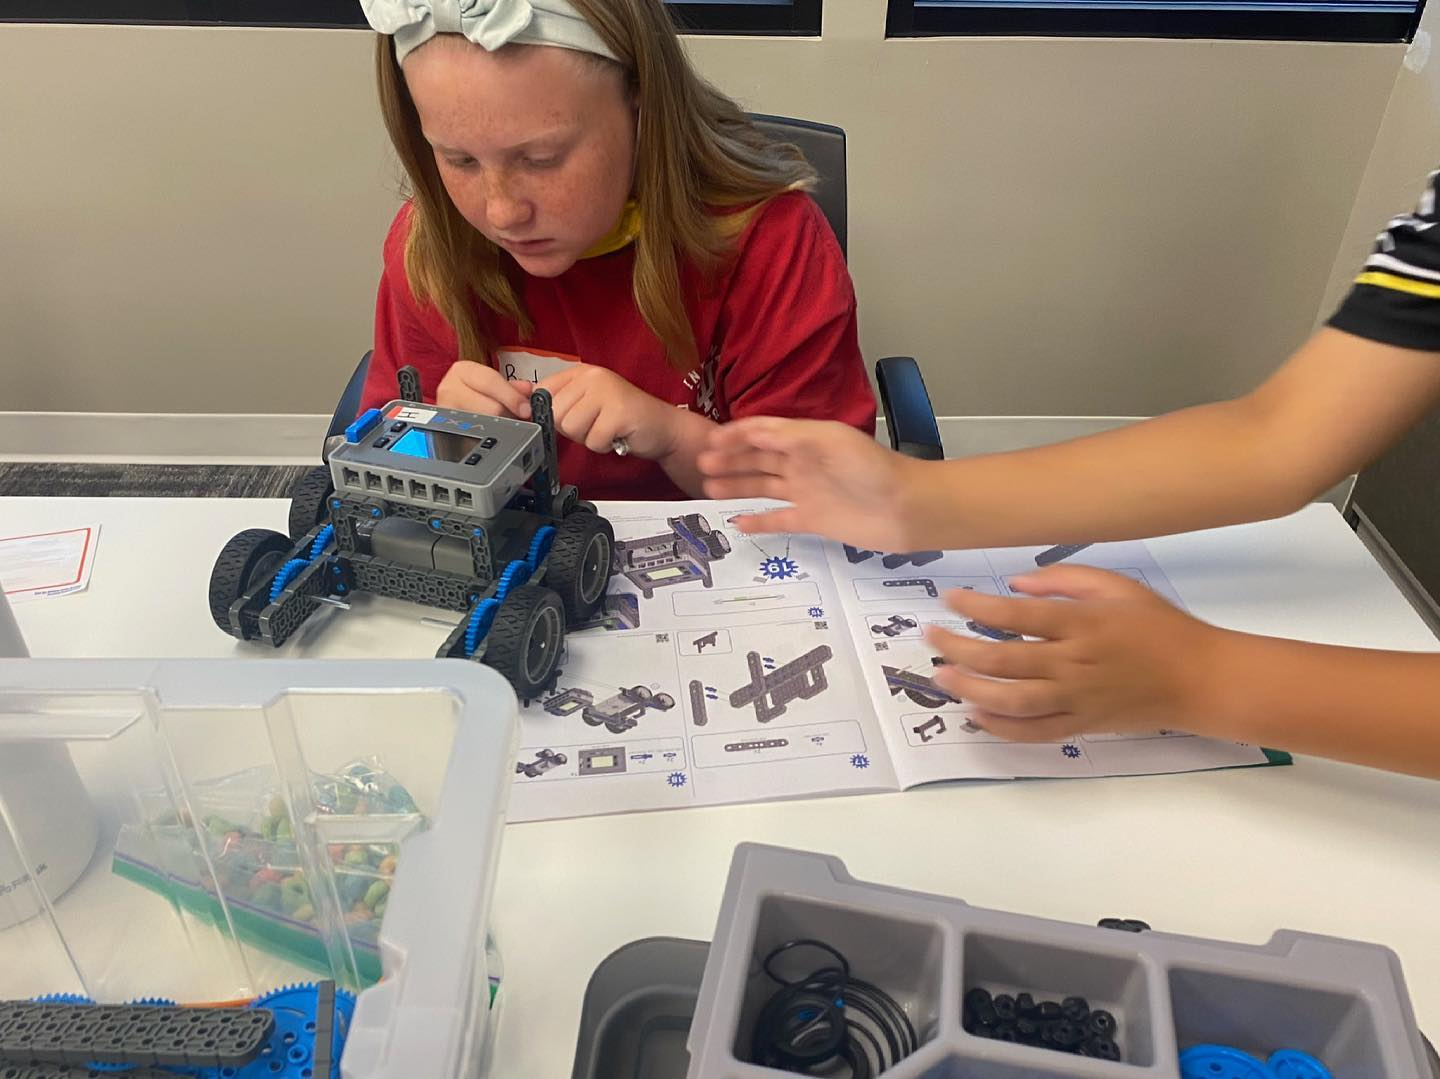 a girl building a lego car out of blue, black and grey legos